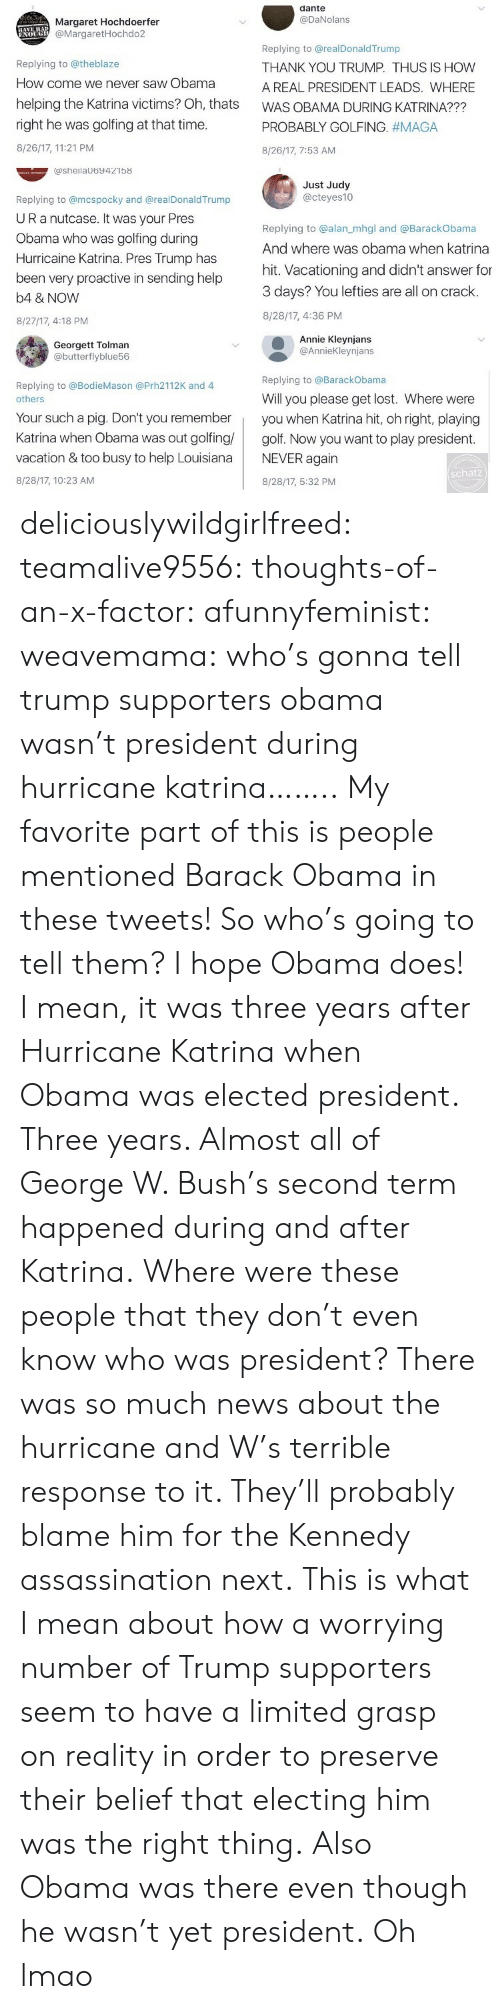 proactive: dante  @DaNolans  Margaret Hochdoerfer  @MargaretHochdo2  Replying to @theblaze  How come we never saw Obama  helping the Katrina victims? Oh, thats  right he was golfing at that time  8/26/17, 11:21 PM  Replying to @realDonaldTrump  THANK YOU TRUMP. THUS IS HOW  A REAL PRESIDENT LEADS. WHERE  WAS OBAMA DURING KATRINA???  PROBABLY GOLFING. #MAGA  8/26/17, 7:53 AM  ashelaUb9421b8  Just Judy  @cteyes10  Replying to @mcspocky and @realDonaldTrump  UR a nutcase. It Was your Pres  Obama who was golfing during  Hurricaine Katrina. Pres Trump has  been very proactive in sending help  b4 & NOVW  8/27/17, 4:18 PM  Replying to @alan_mhgl and @BarackObama  And where was obama when katrina  hit. Vacationing and didn't answer for  3 days? You lefties are all on crack.  8/28/17, 4:36 PM  Georgett Tolman  @butterflyblue56  Annie Kleynjans  @AnnieKleynjans  Replying to @BarackObama  Replying to @BodieMason @Prh2112K and 4  Will you please get lost. Where were  others  Your such a pig. Don't you rememberyou when Katrina hit, oh right, playing  Katrina when Obama was out golfing golf. Now you want to play president  vacation & too busy to help LouisianaNEVER again  8/28/17, 10:23 AM  schatz  8/28/17, 5:32 PM deliciouslywildgirlfreed:  teamalive9556:   thoughts-of-an-x-factor:   afunnyfeminist:  weavemama: who's gonna tell trump supporters obama wasn't president during hurricane katrina…….. My favorite part of this is people mentioned Barack Obama in these tweets! So who's going to tell them? I hope Obama does! I mean, it was three years after Hurricane Katrina when Obama was elected president. Three years. Almost all of George W. Bush's second term happened during and after Katrina.Where were these people that they don't even know who was president? There was so much news about the hurricane and W's terrible response to it. They'll probably blame him for the Kennedy assassination next.  This is what I mean about how a worrying number of Trump supporters seem to have a limi